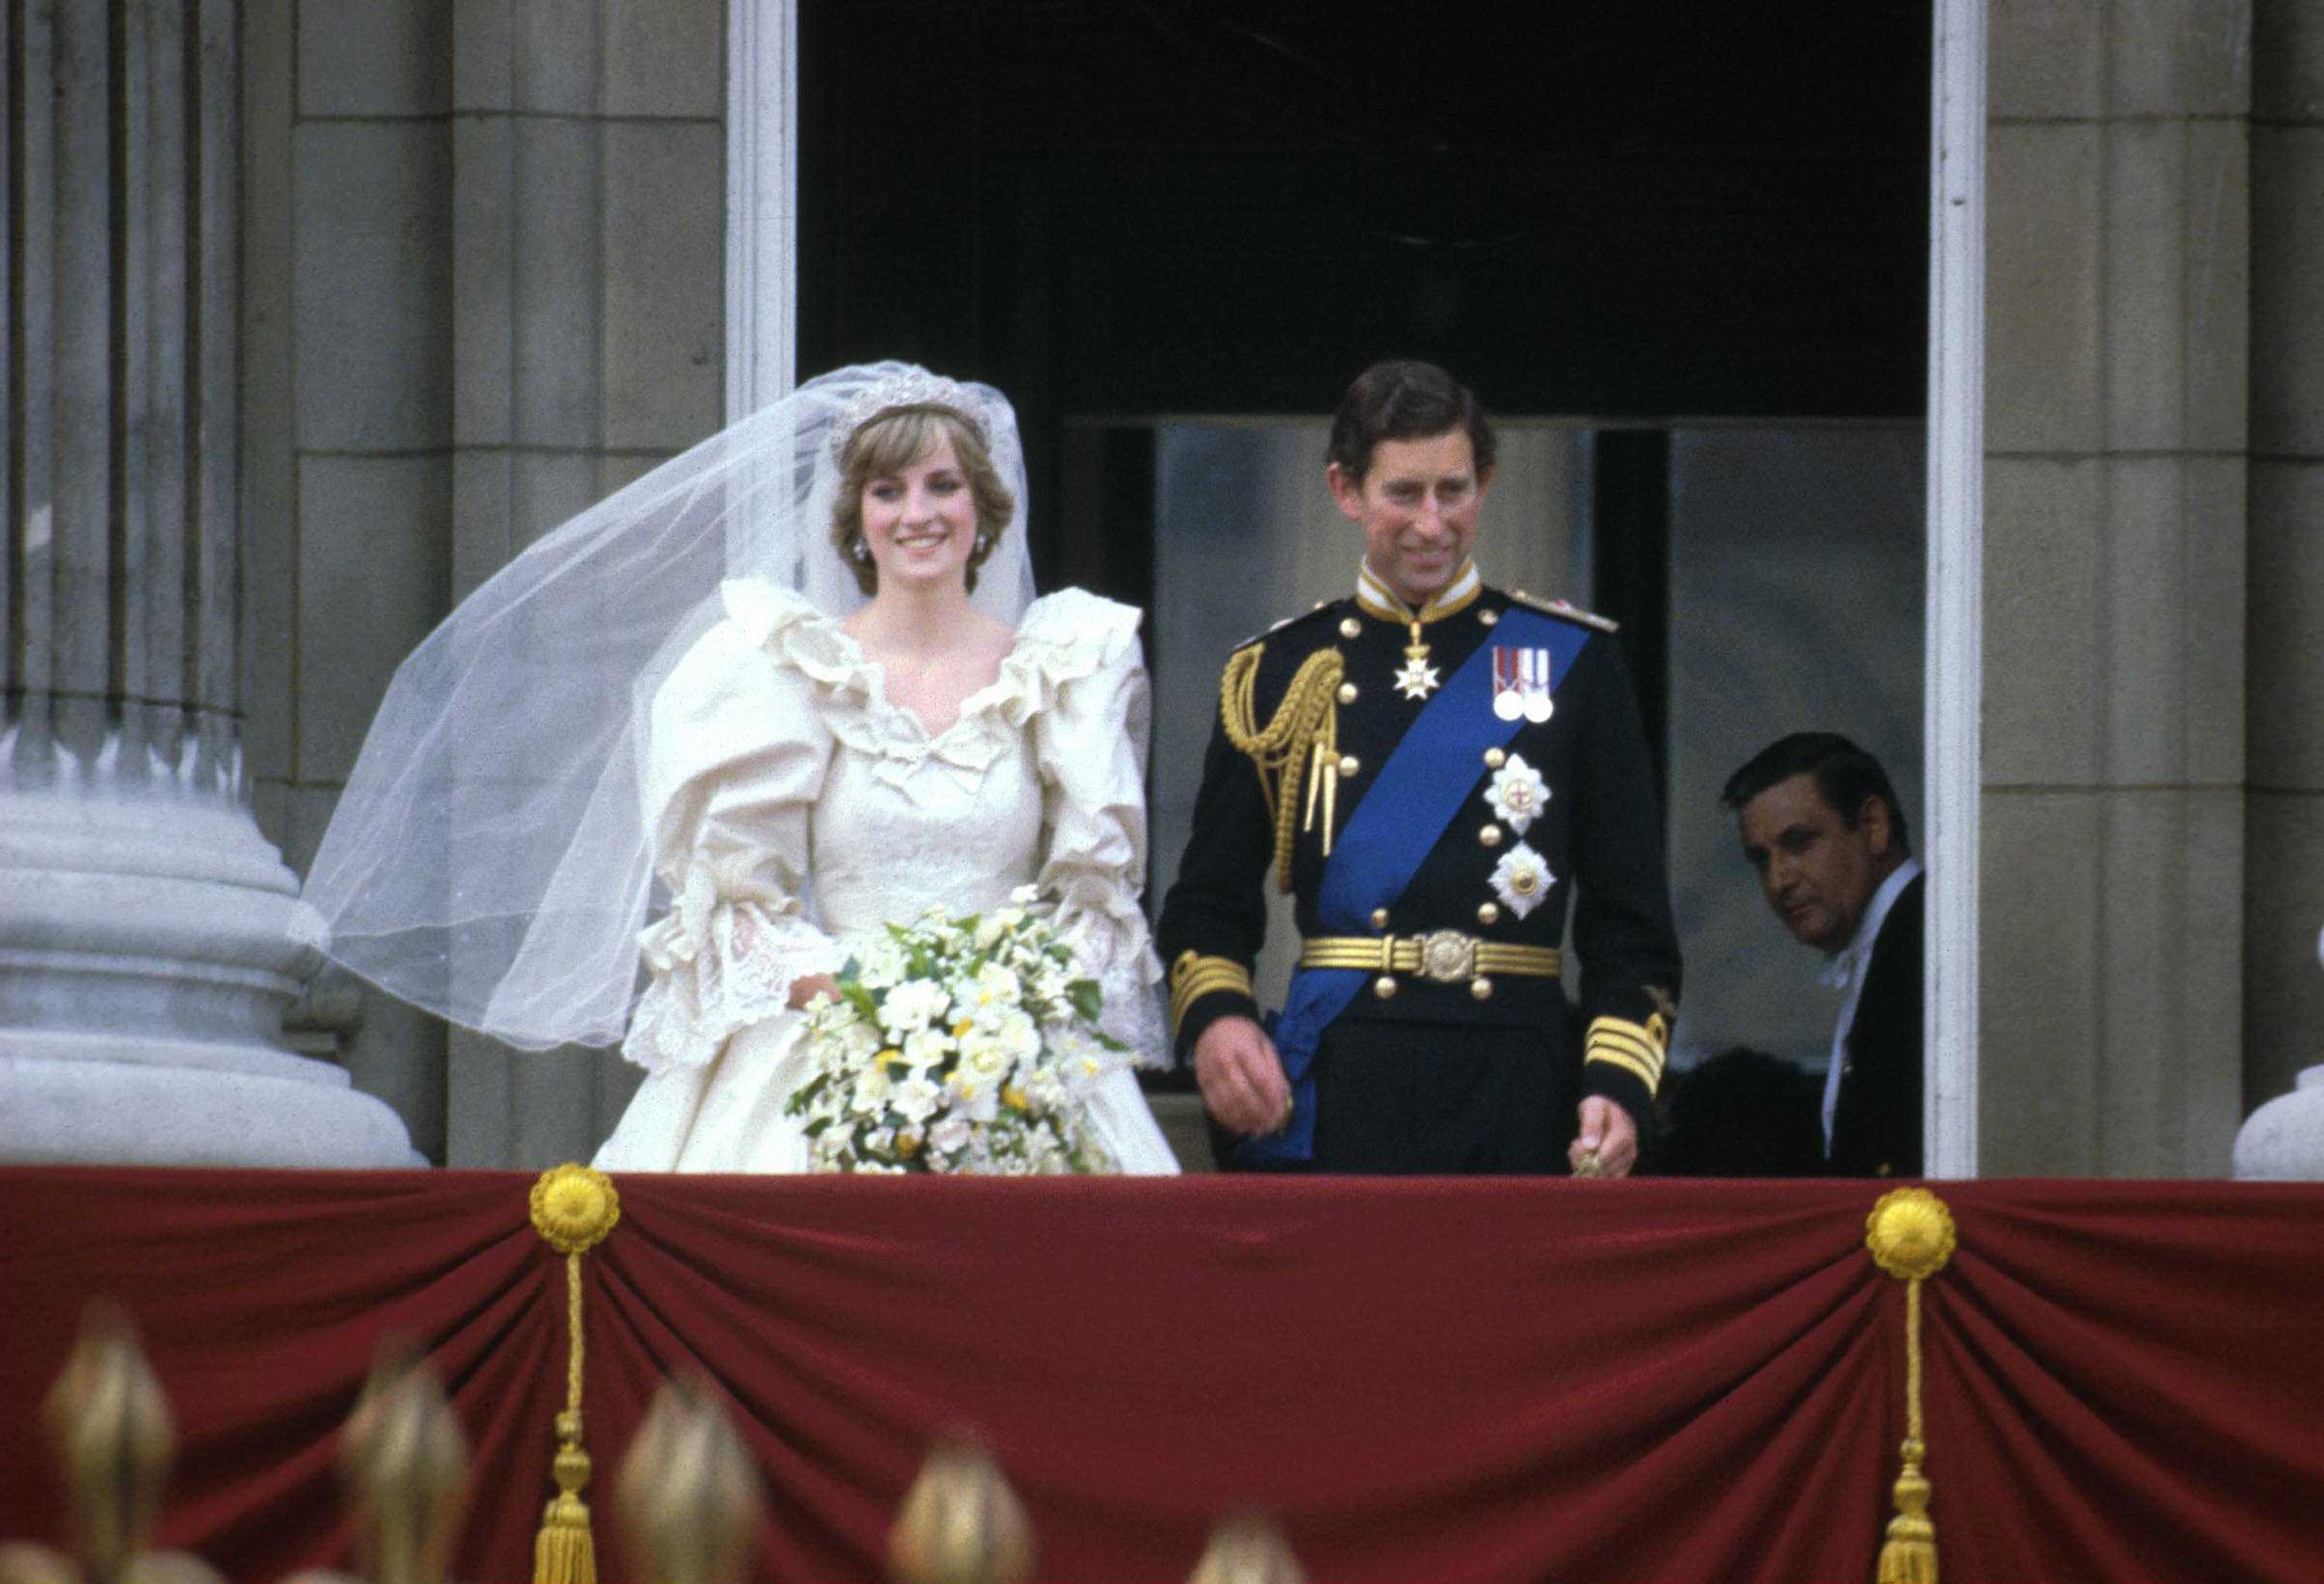 Charles et  Diana sur le balcon du palais de Buckingham | Photo: Getty Images